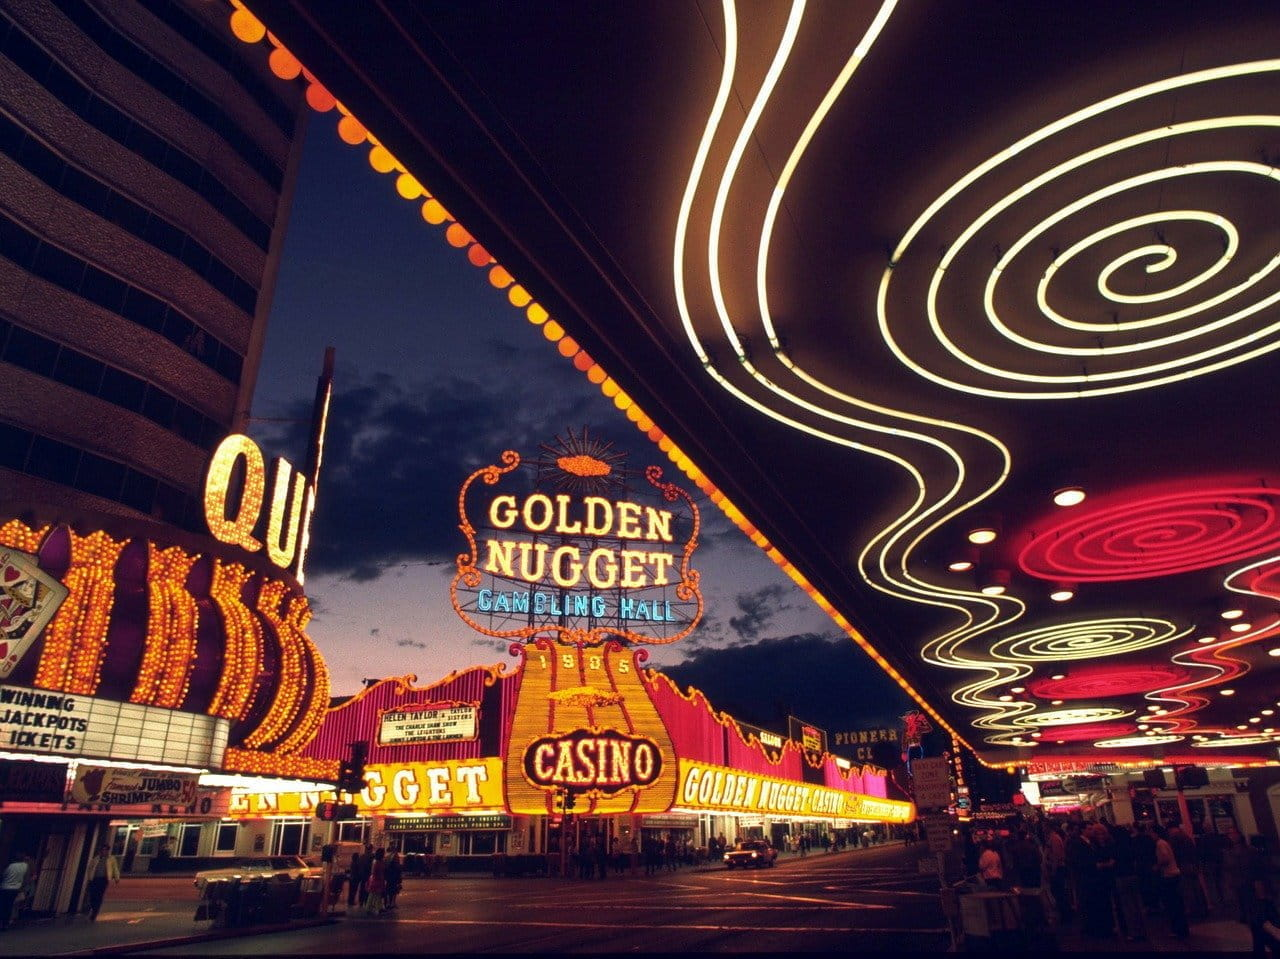 Las Vegas Strip lit up in neon lights at night featuring the Golden Nugget casino.